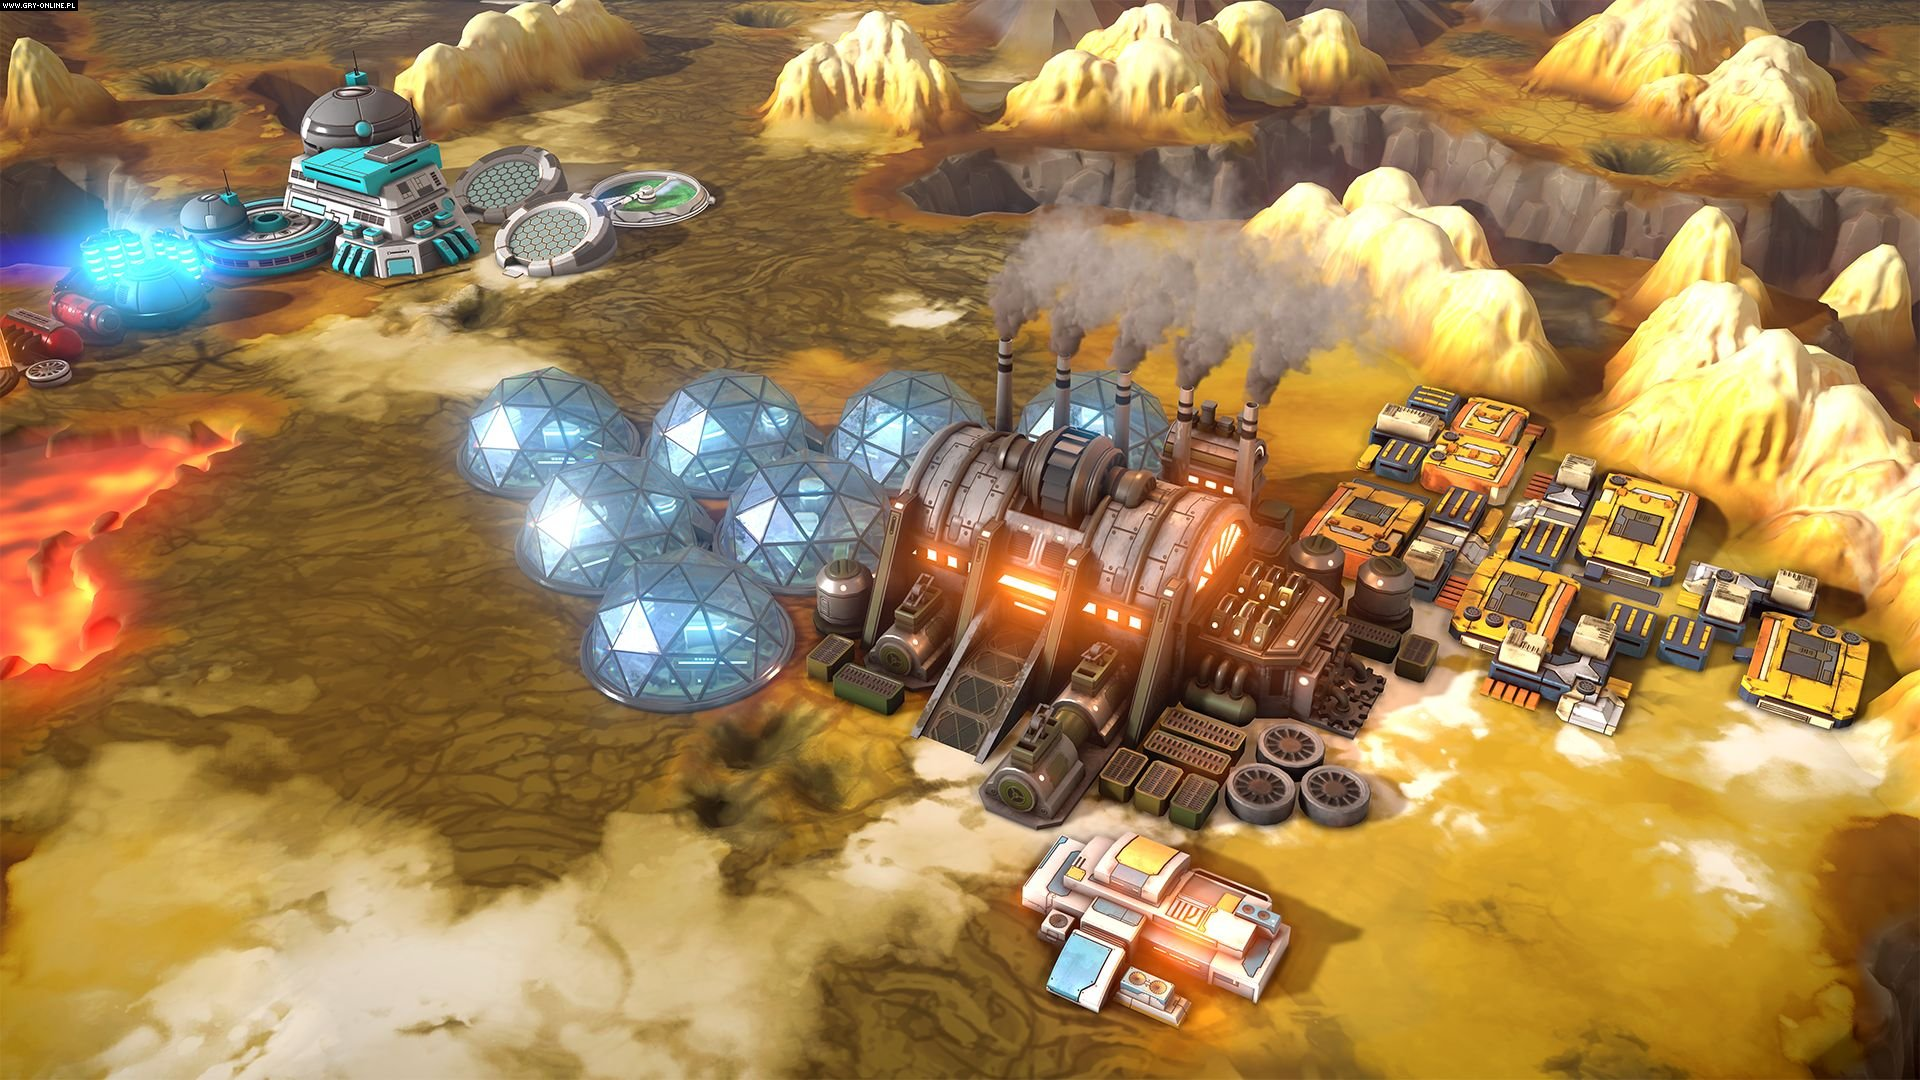 Offworld Trading Company: Jupiter's Forge PC Games Image 5/5, Mohawk Games, Stardock Corporation